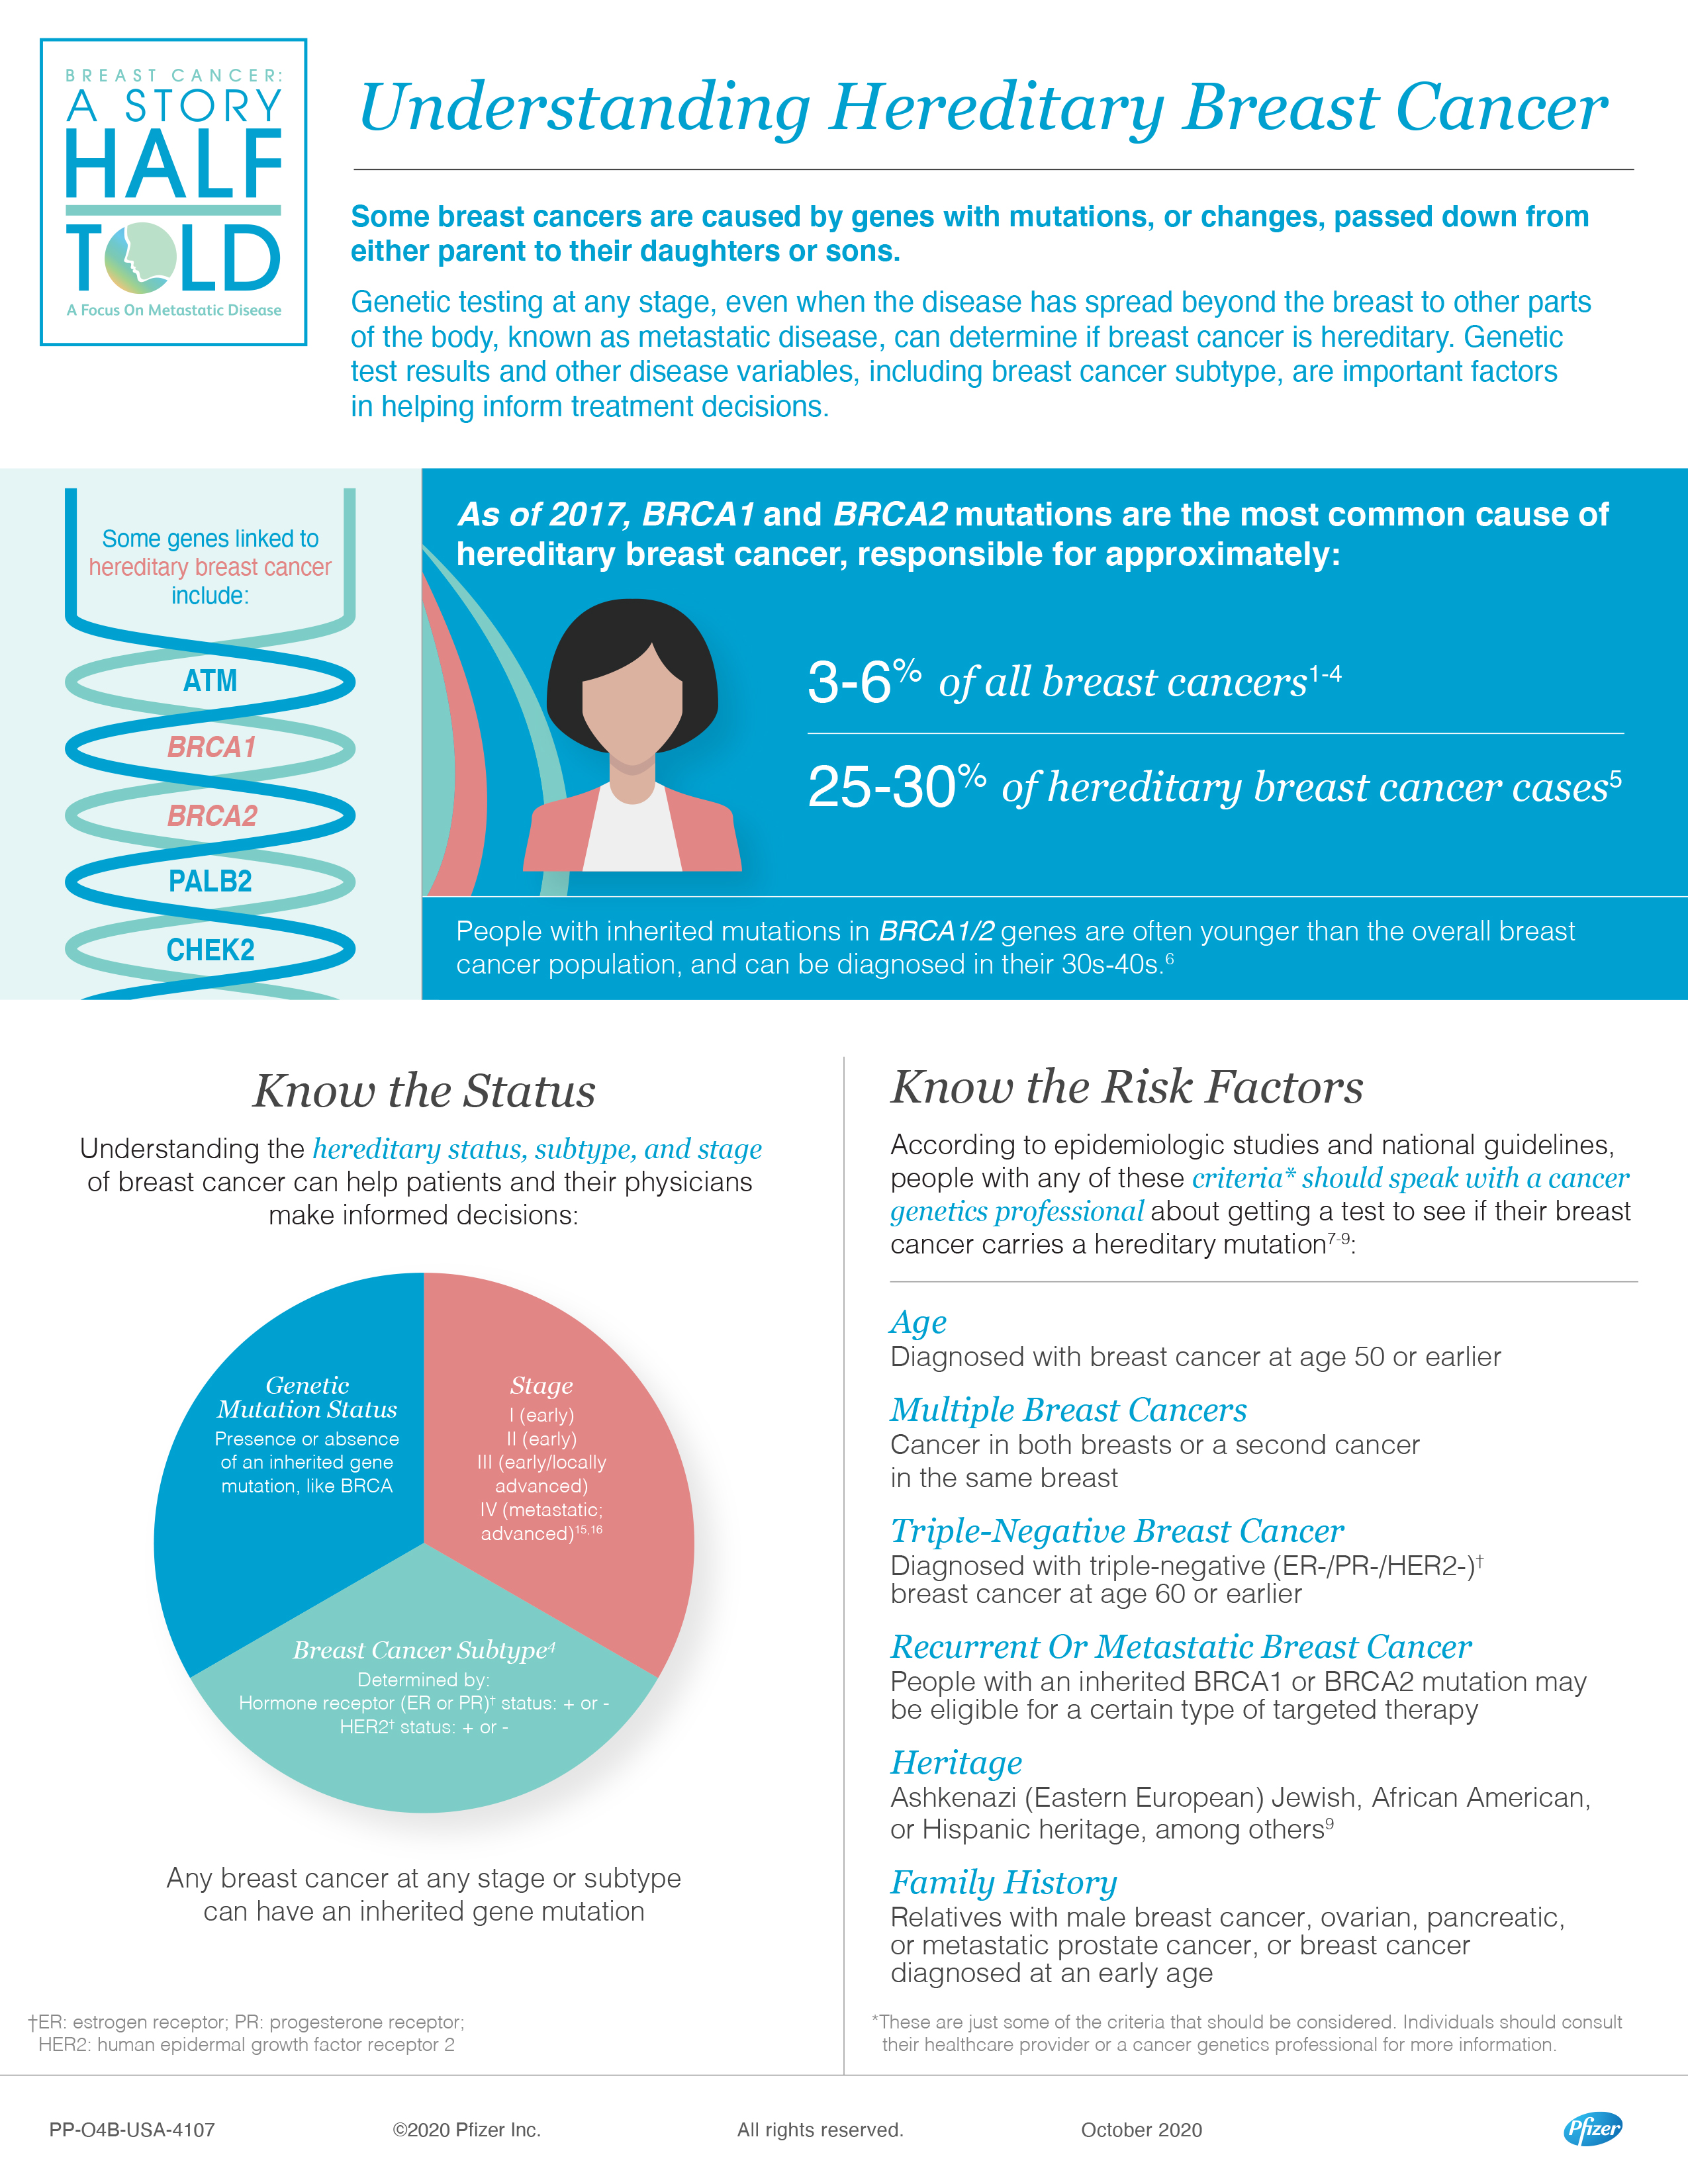 4 SHT Hereditary Breast Cancer Infographic